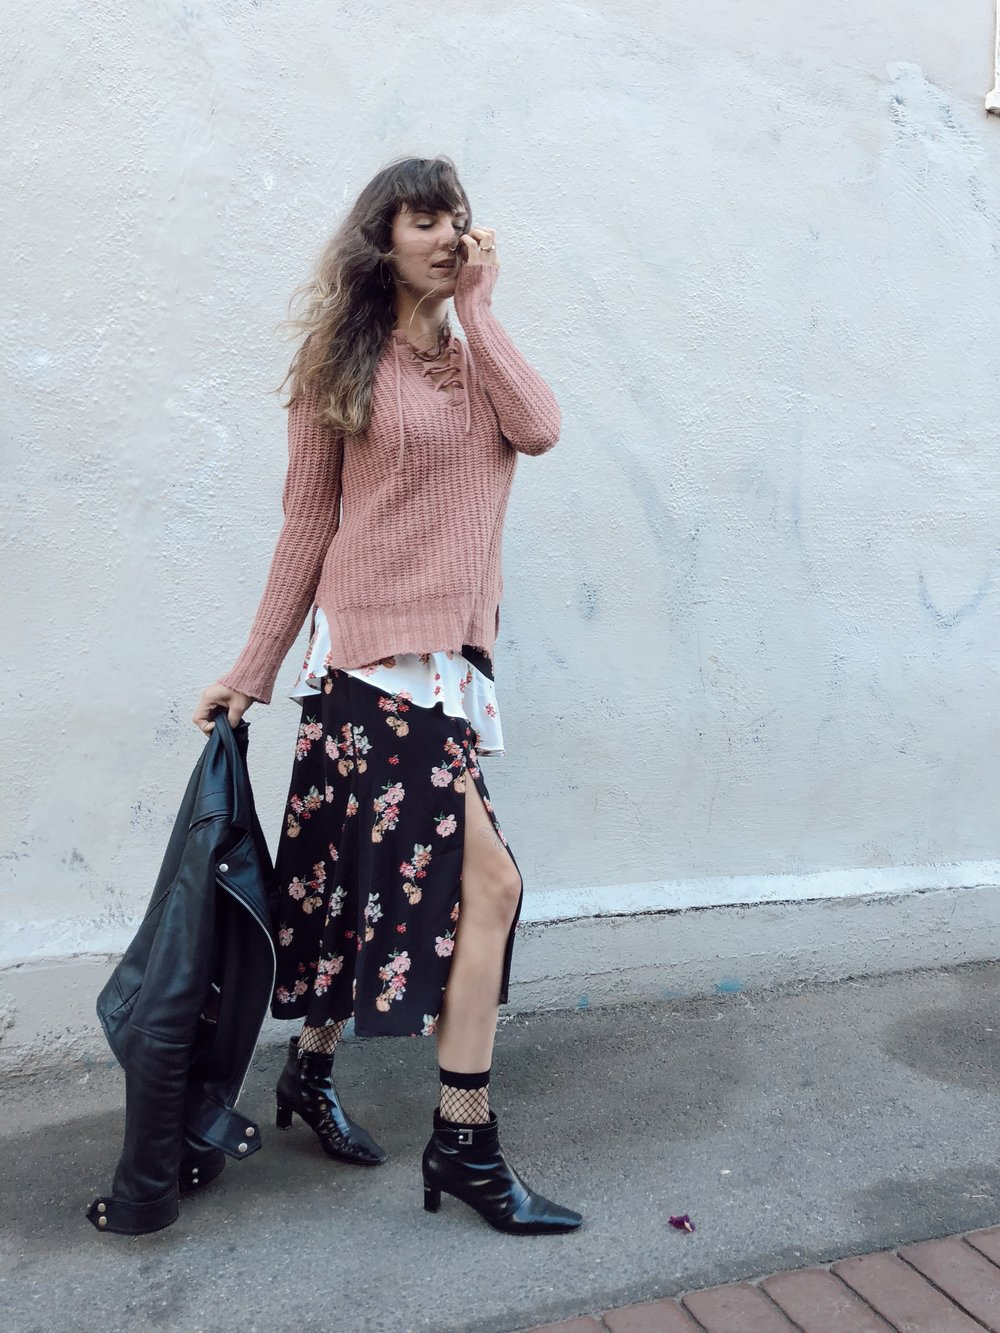 Floral Summer Dress for Fall